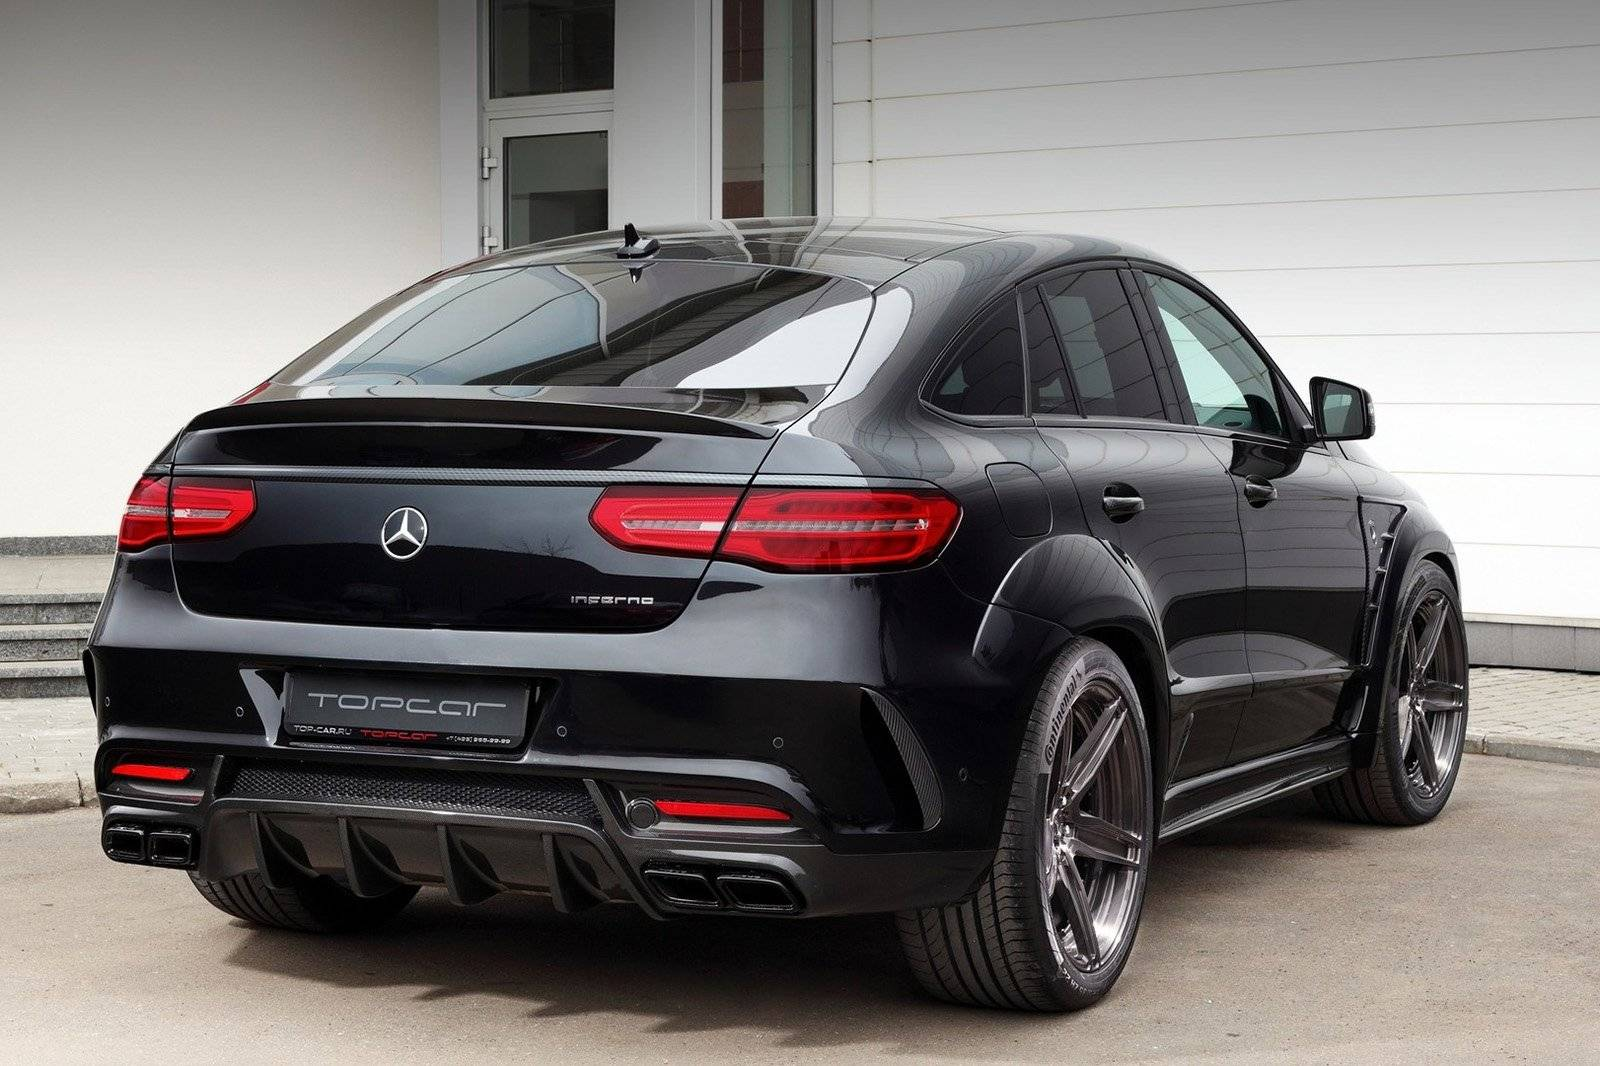 Topcar vertimmert Mercedes GLE Coupé / Tuning & styling ...